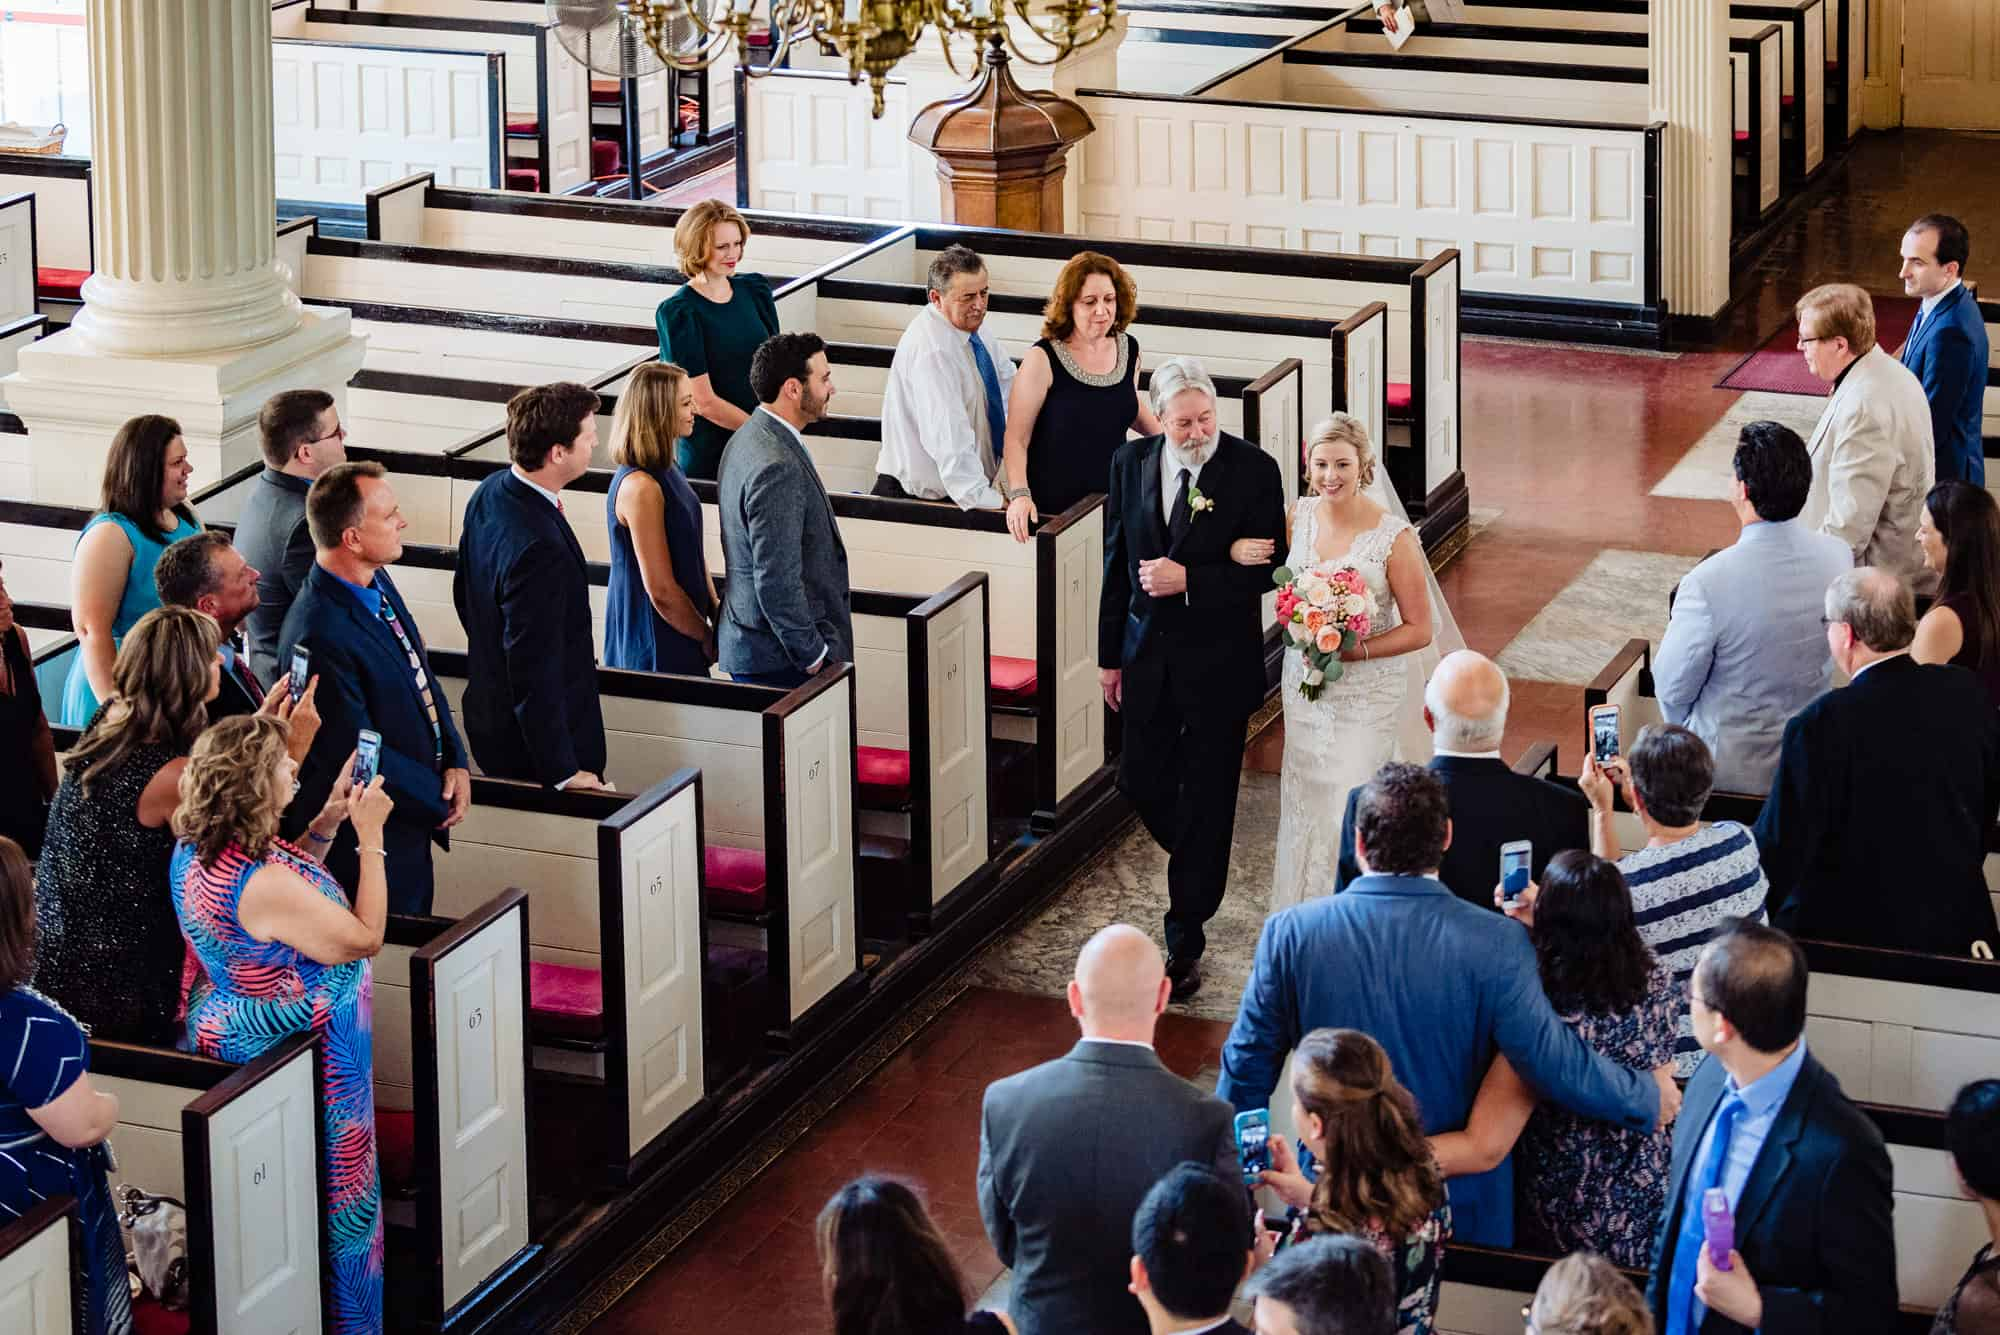 wedding ceremony, overview of guests watching bride walk down the aisle with father